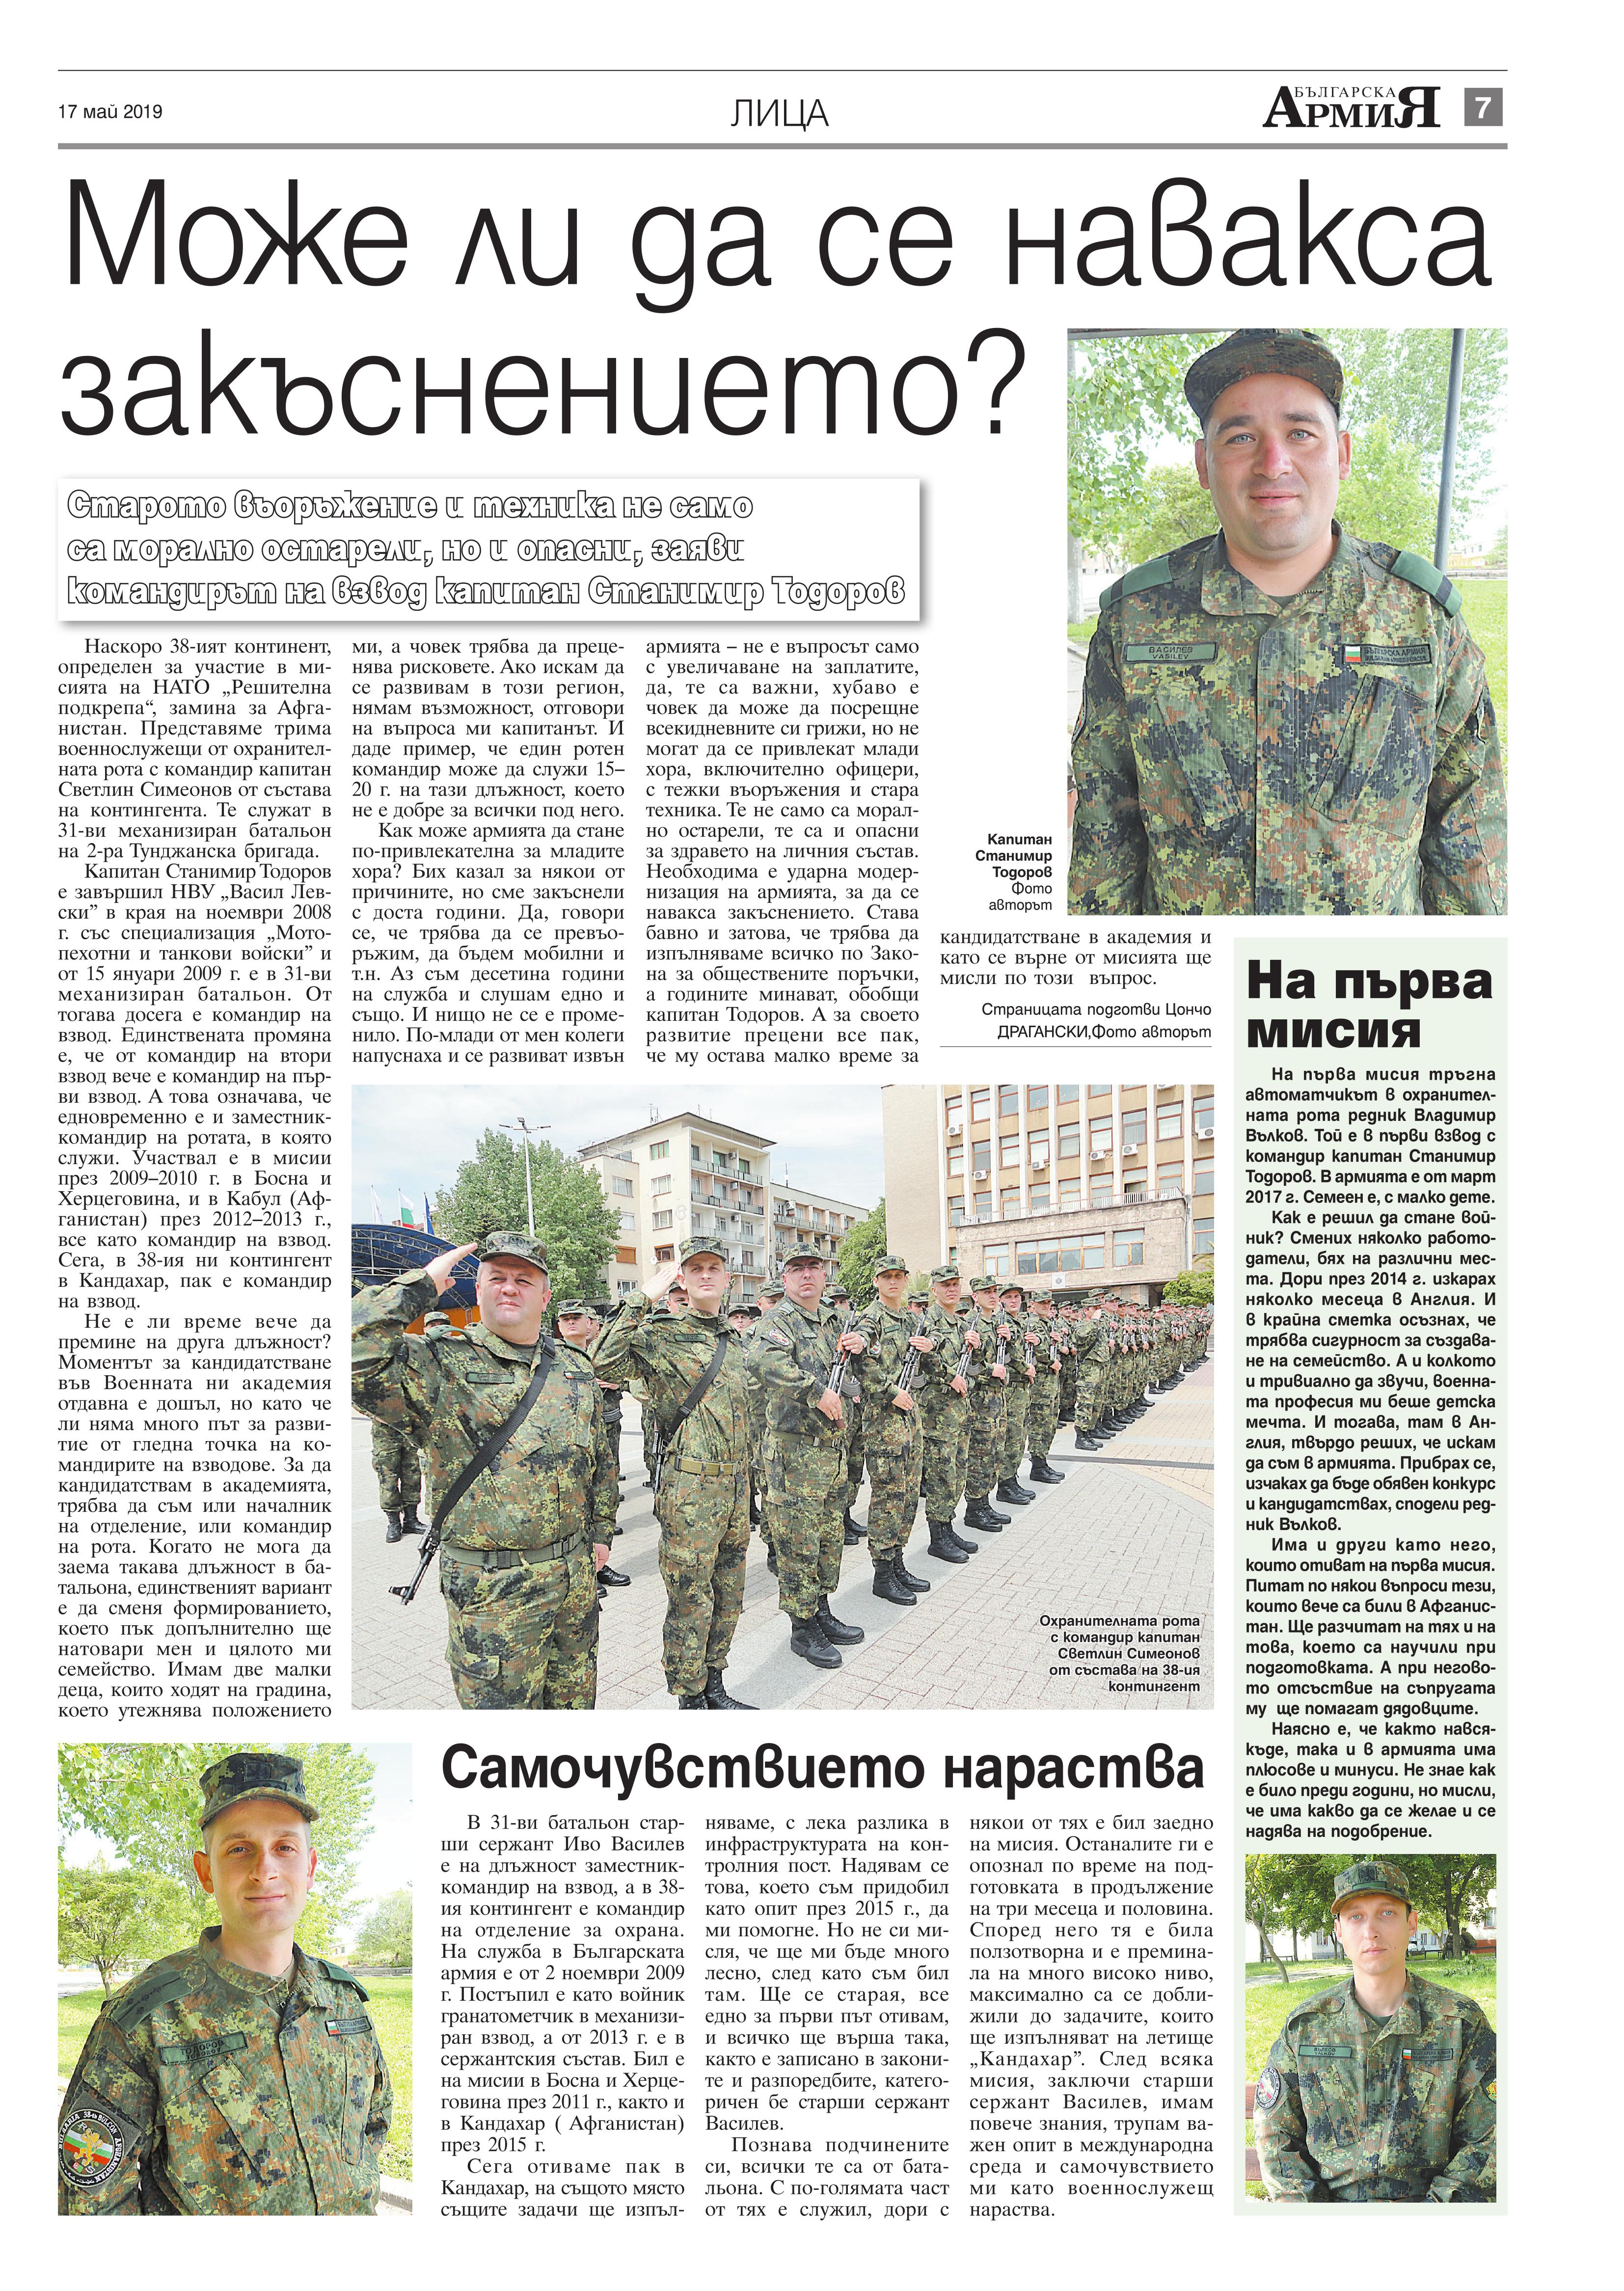 https://armymedia.bg/wp-content/uploads/2015/06/07.page1_-92.jpg